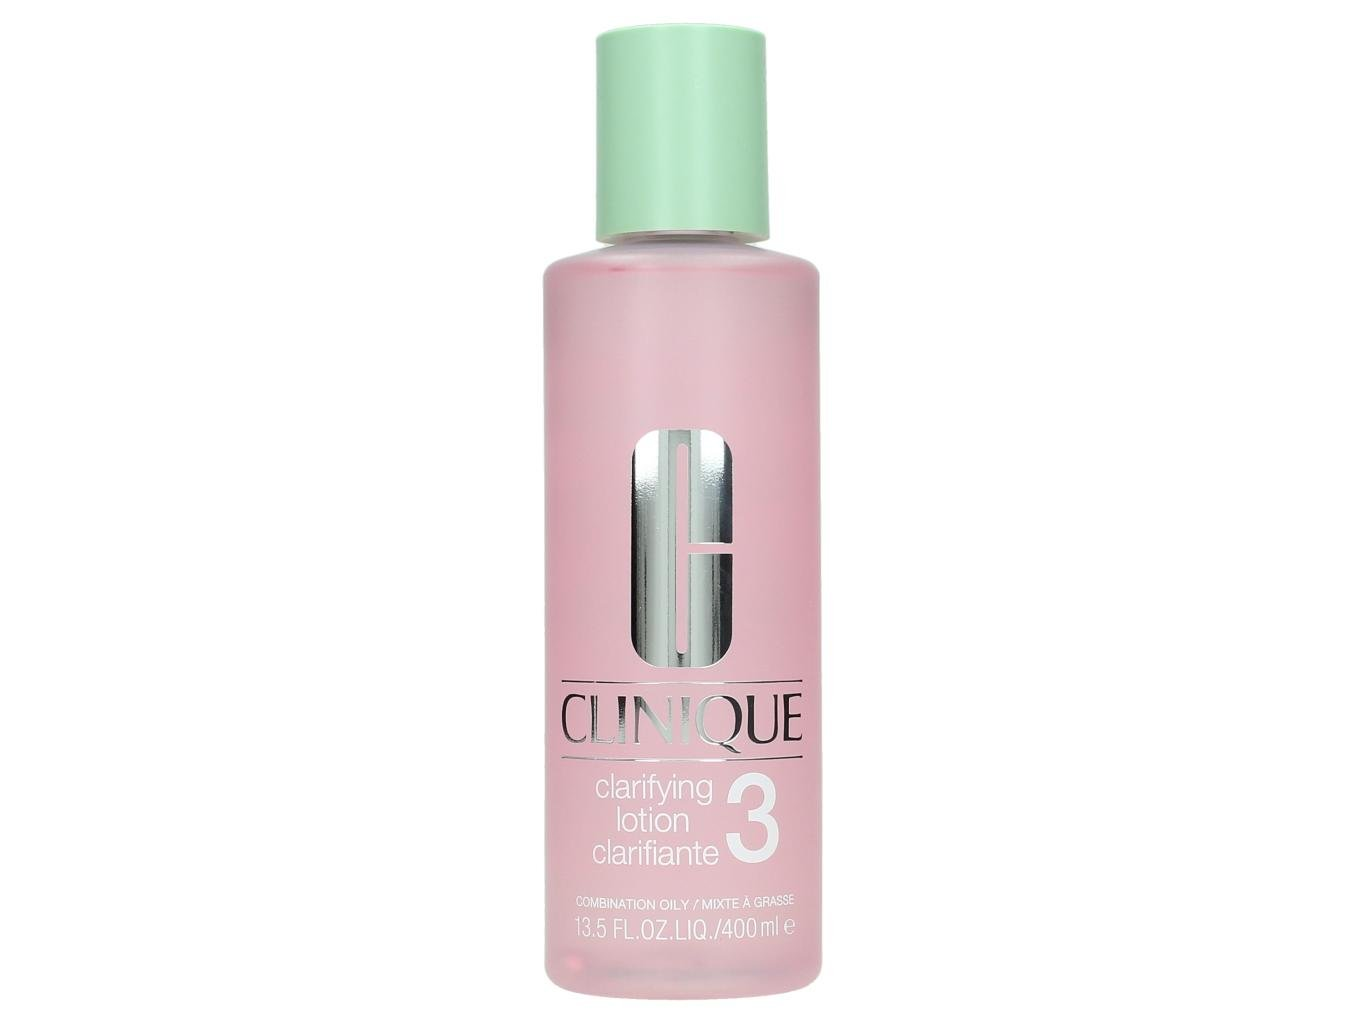 Clinique Clarifying #3 Lotion, 13.5 Ounce